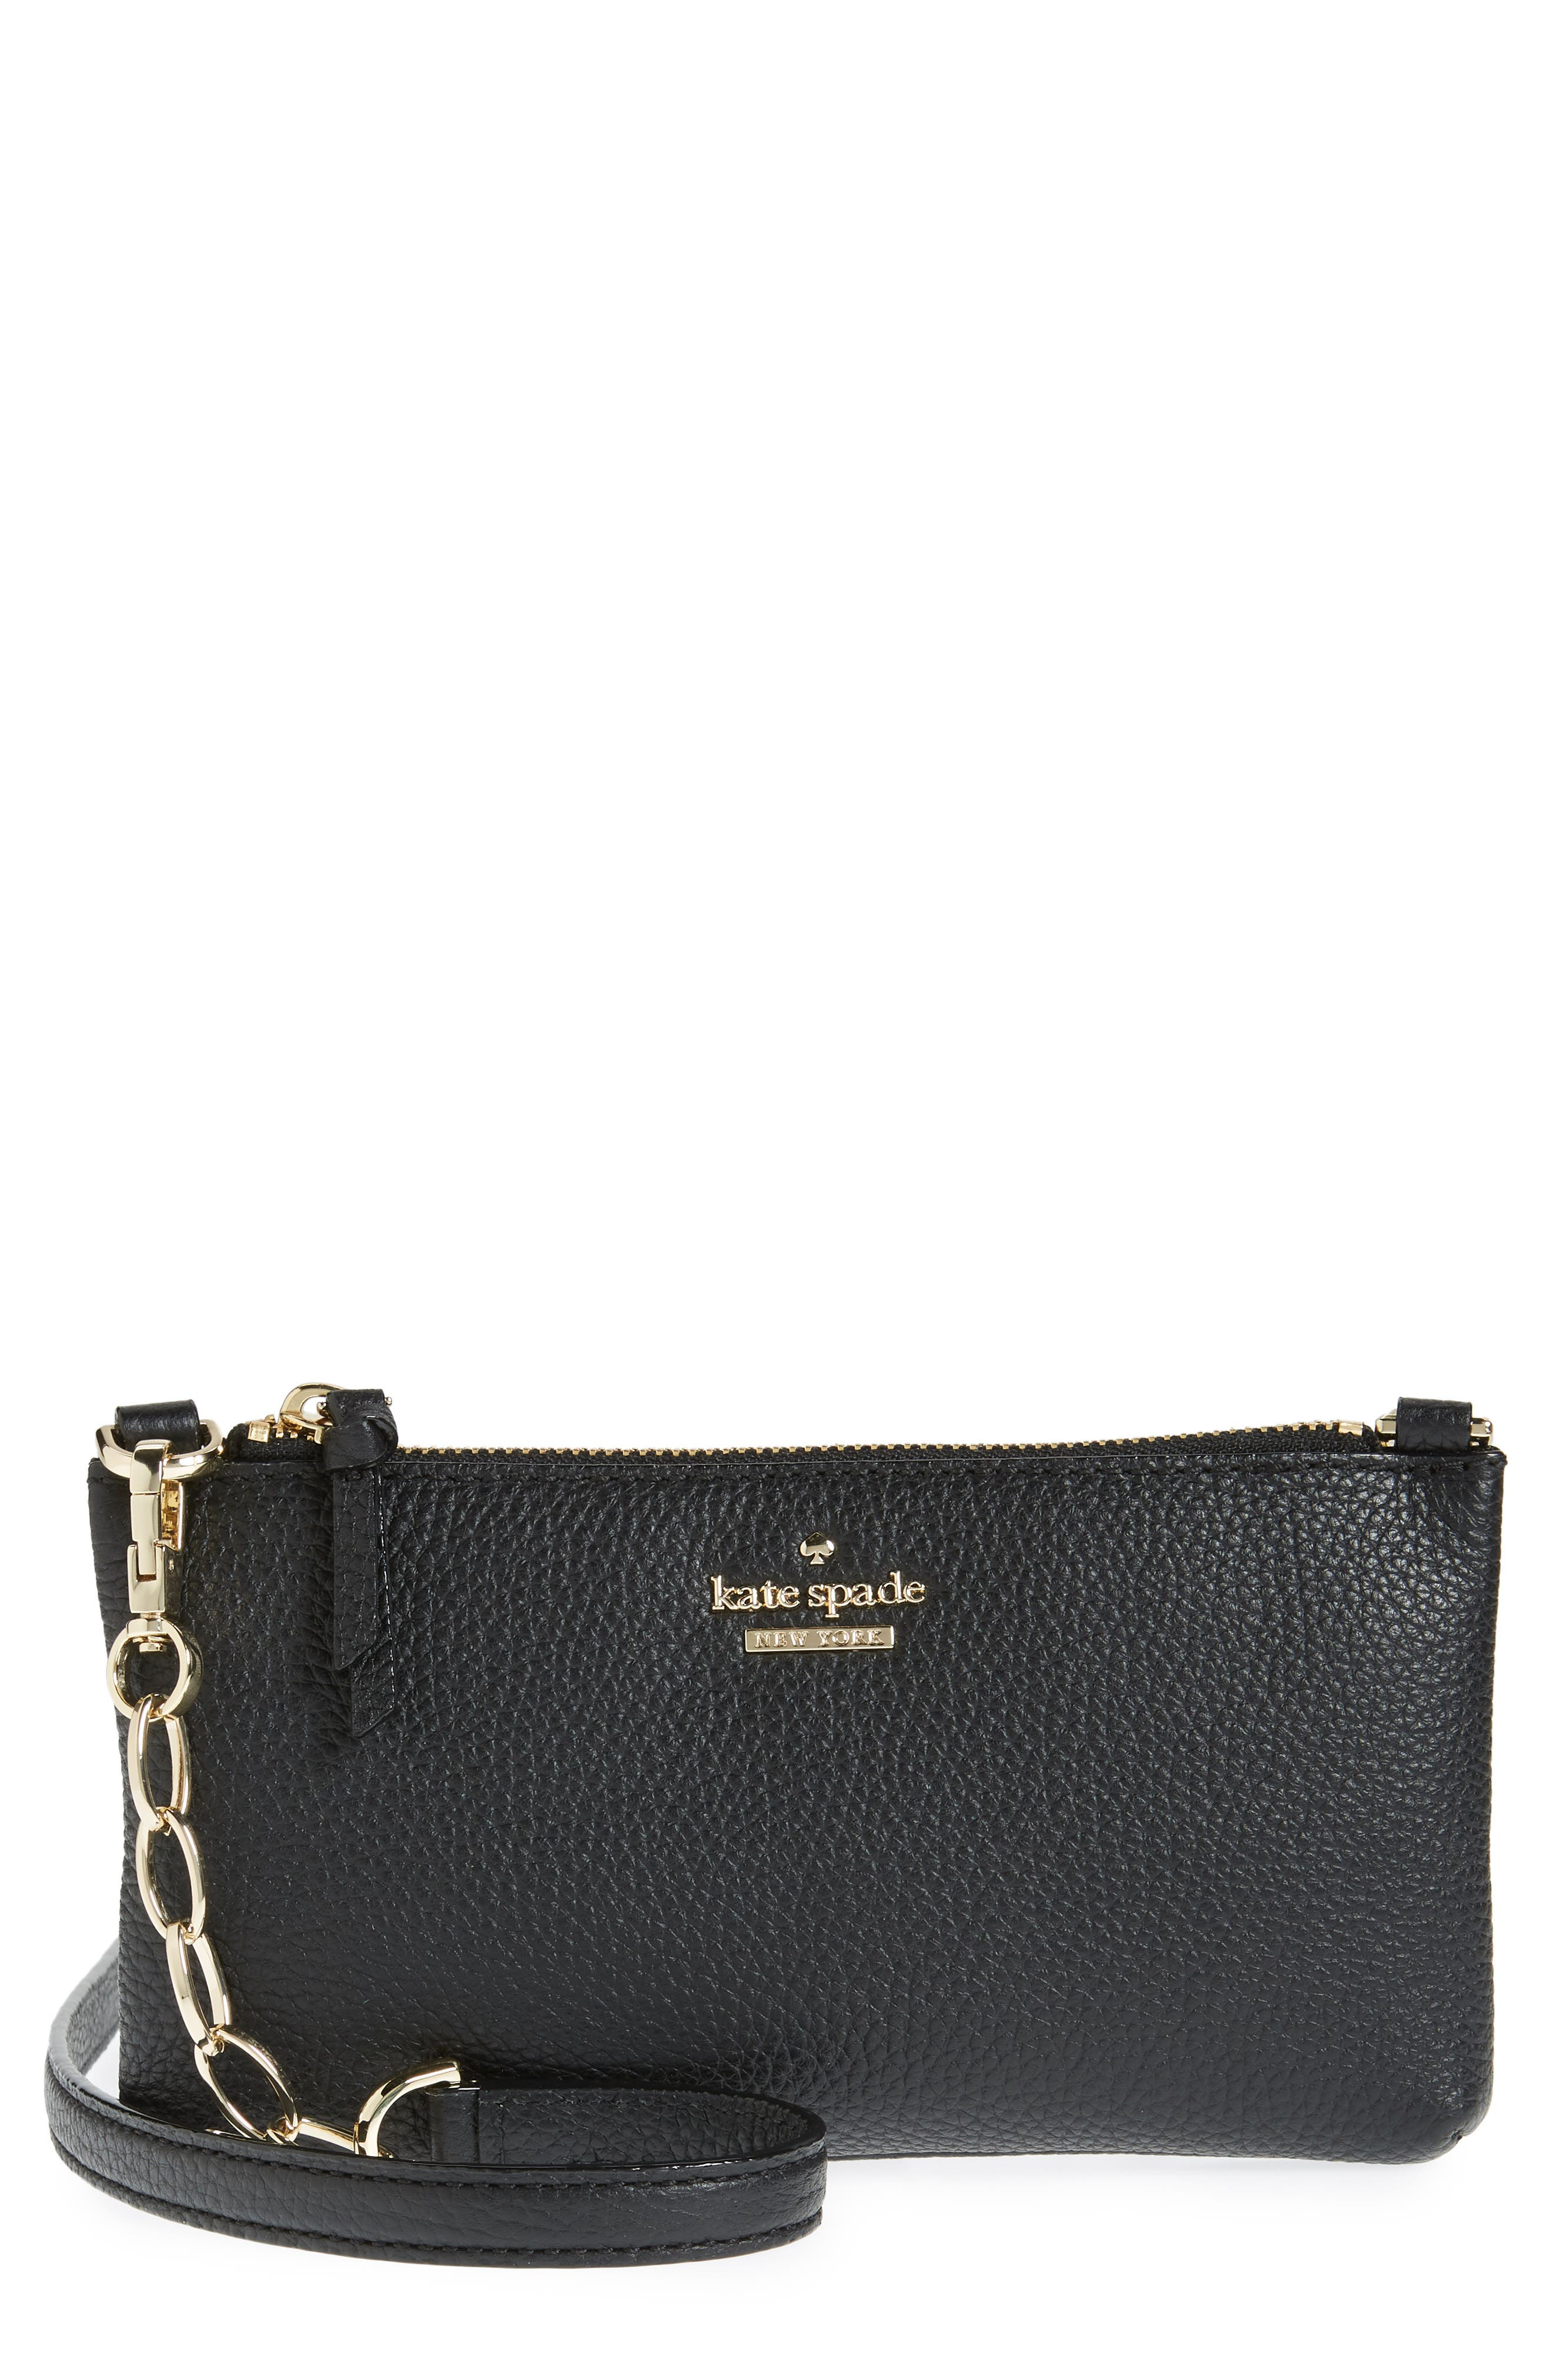 jackson street – dolores leather crossbody bag,                         Main,                         color, 001